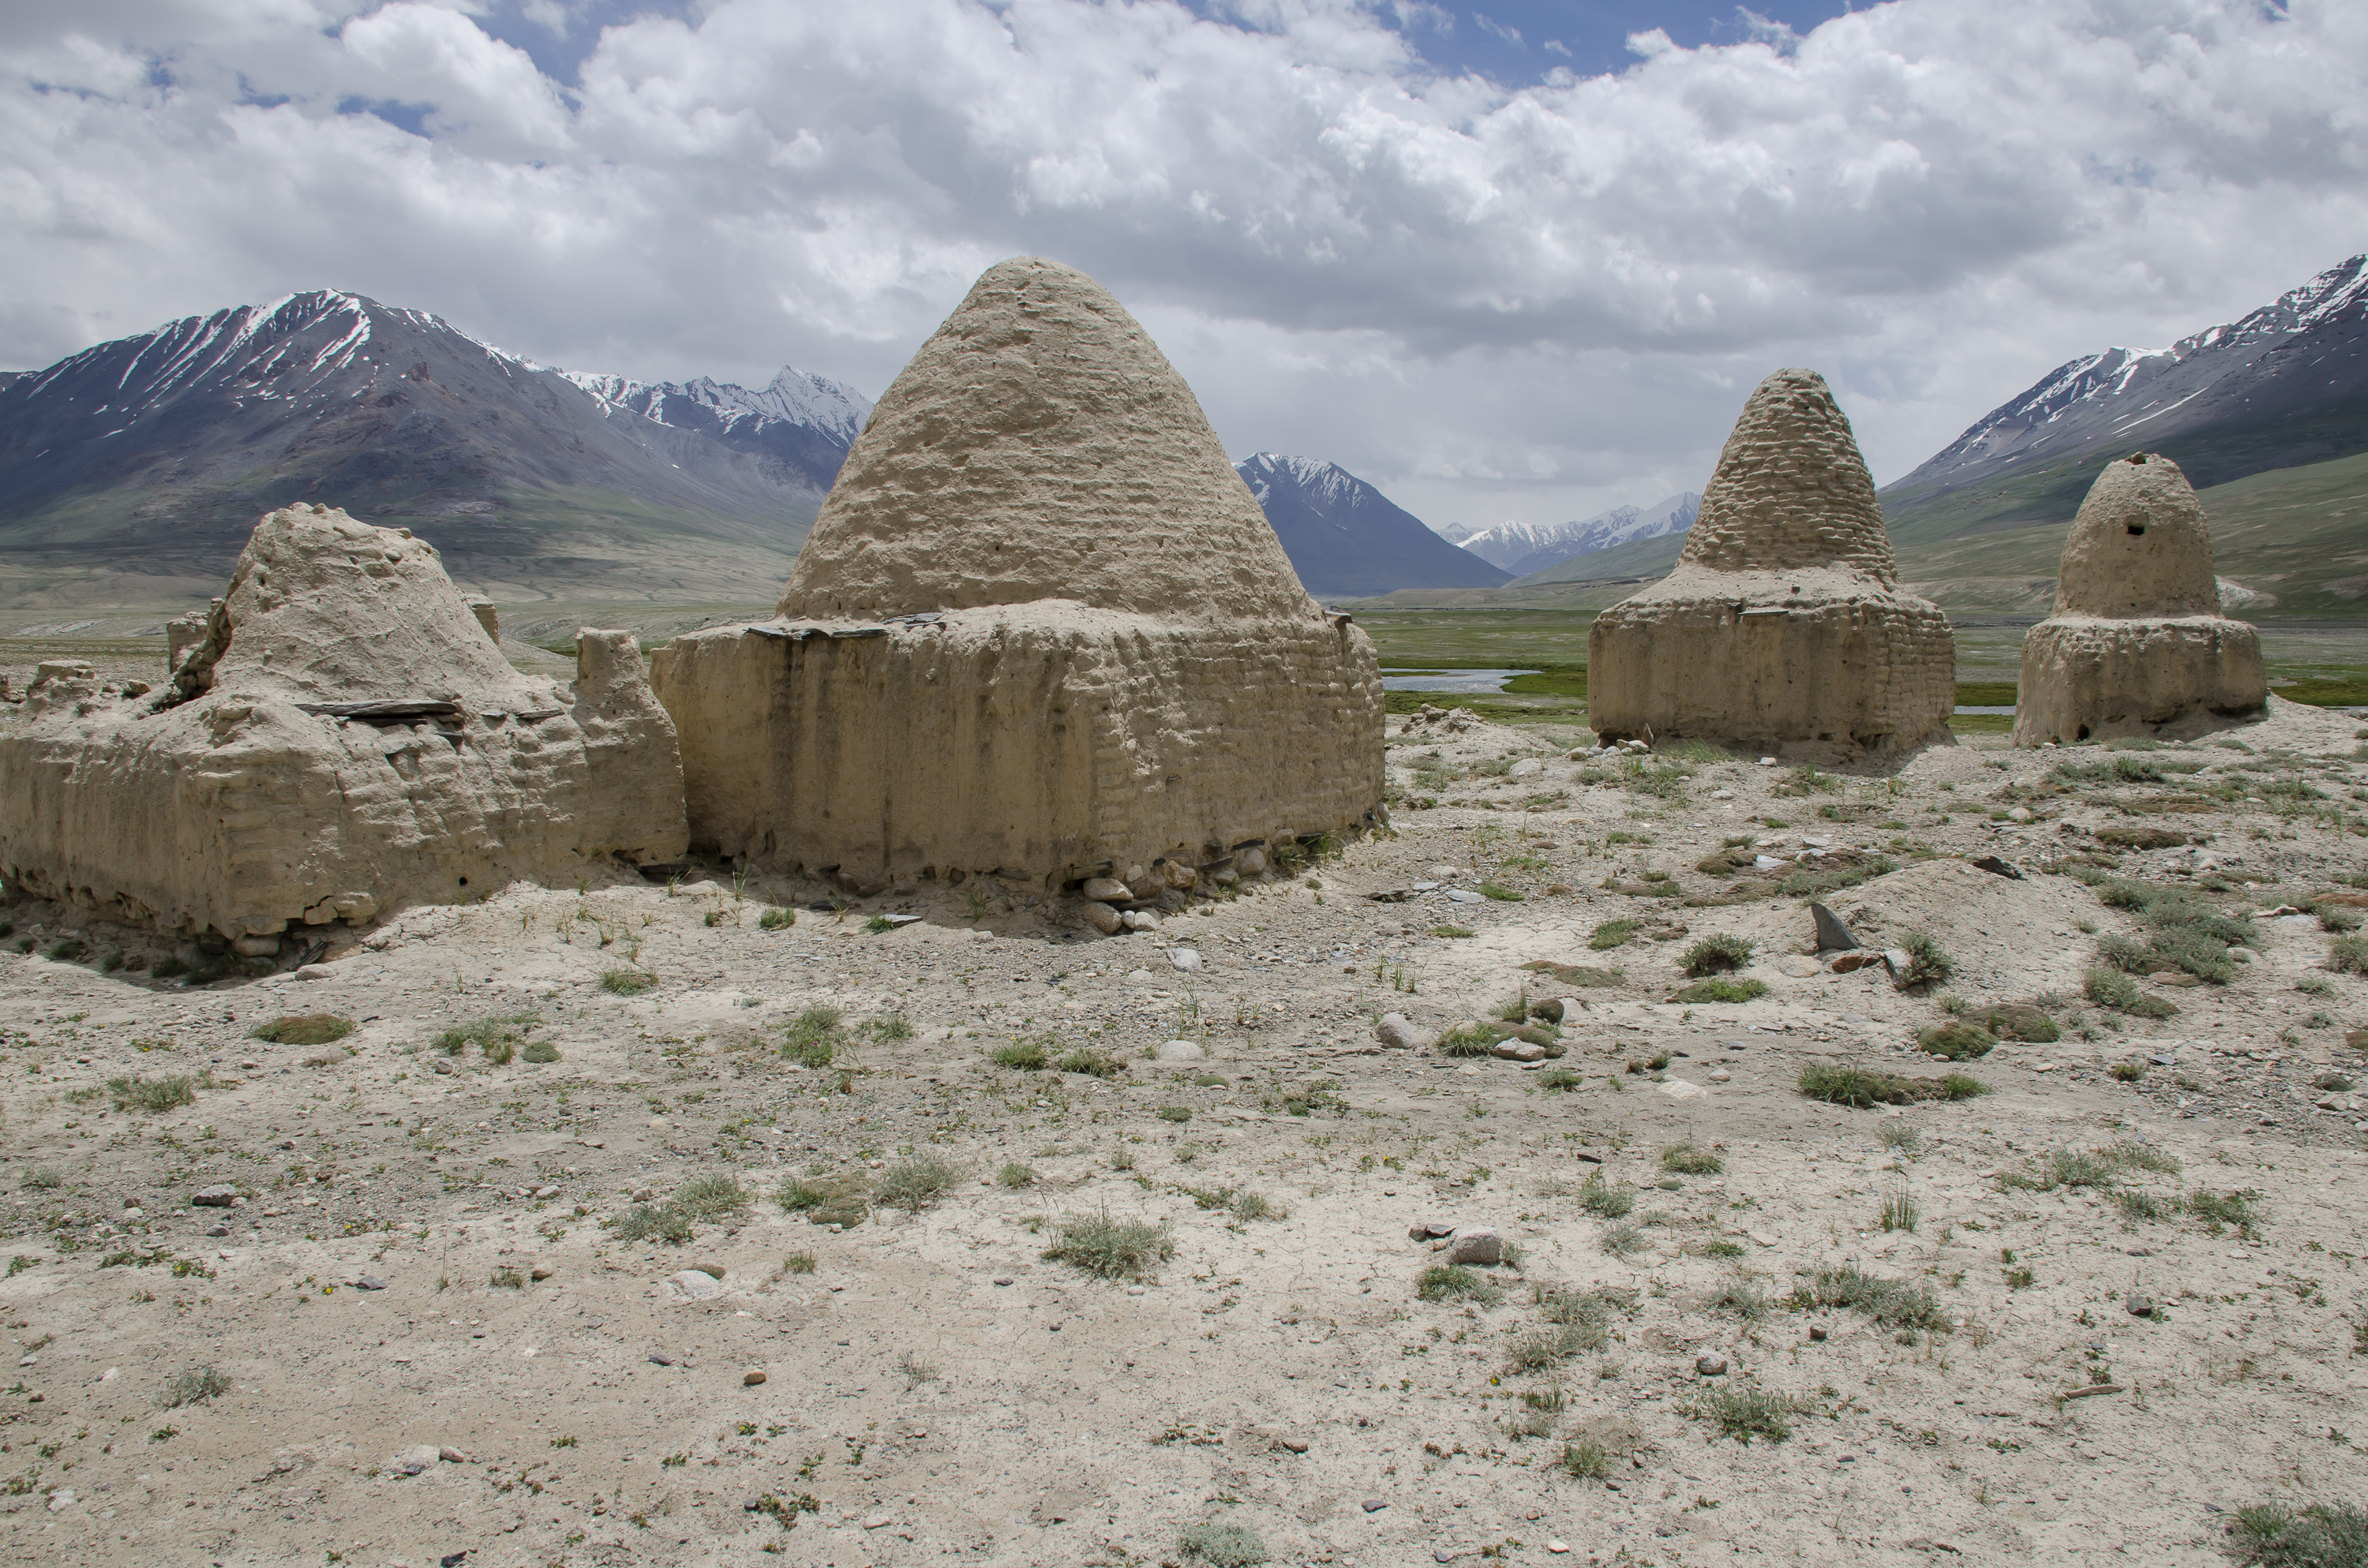 Tombs in Little Pamir